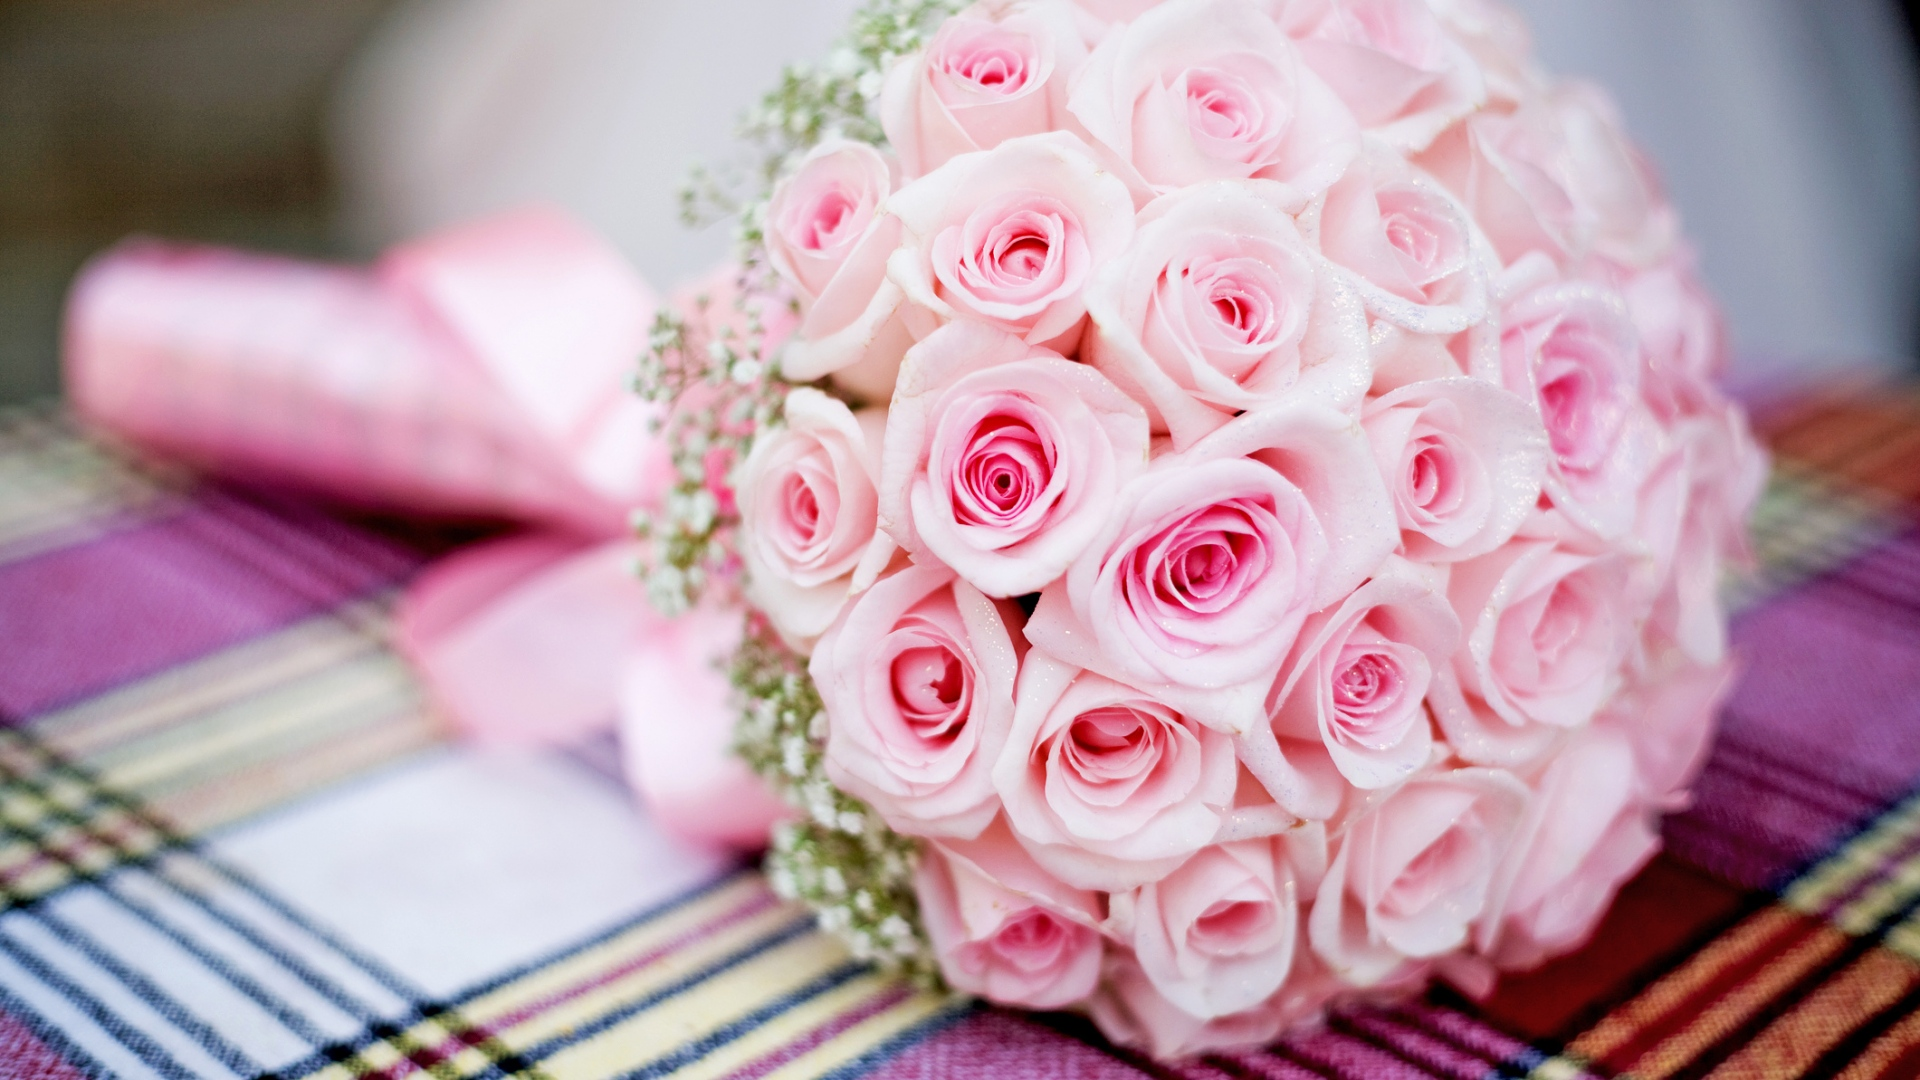 5 occasions that are best for offering flowers to your dear ones is the birthday of your special friend girlfriend wife boss or any other dear ones a perfect bouquet of beautiful flowers is the superb choice for izmirmasajfo